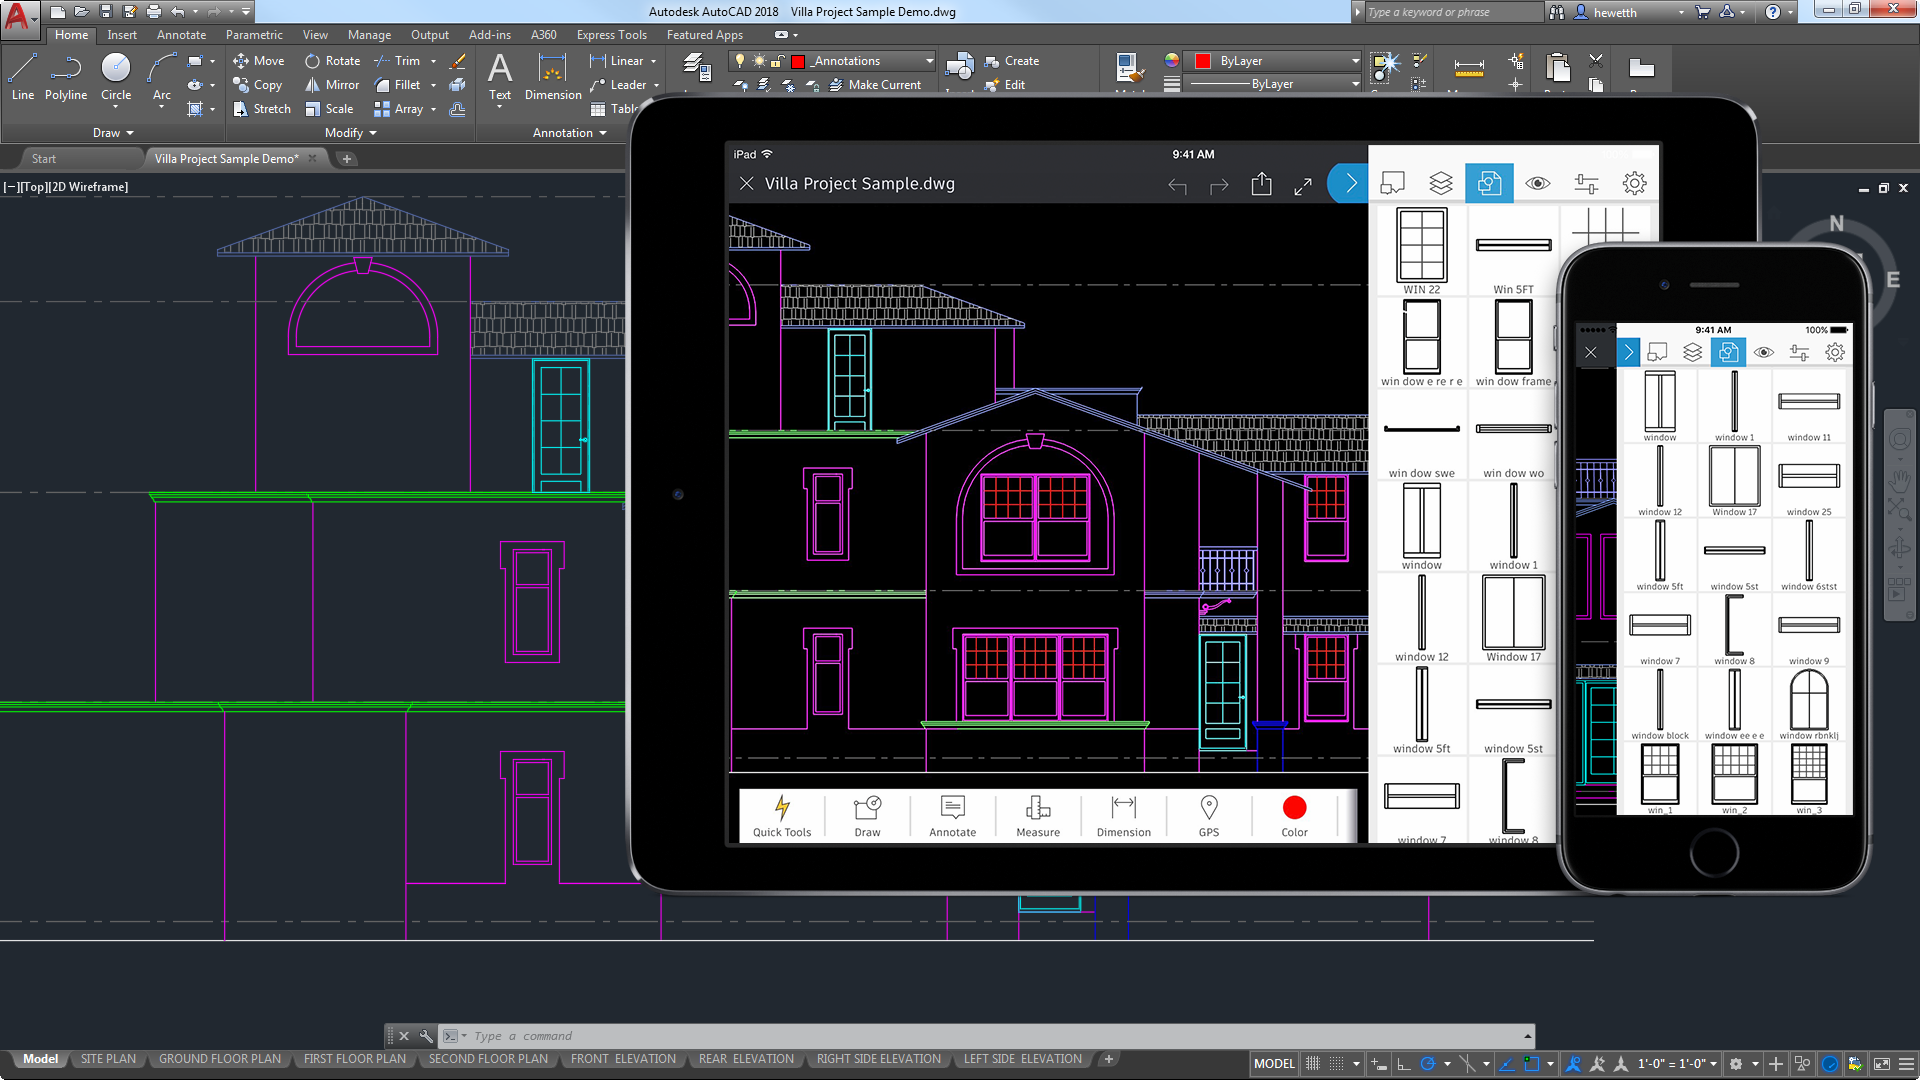 autocad for mac windows cad software autodesk. Black Bedroom Furniture Sets. Home Design Ideas